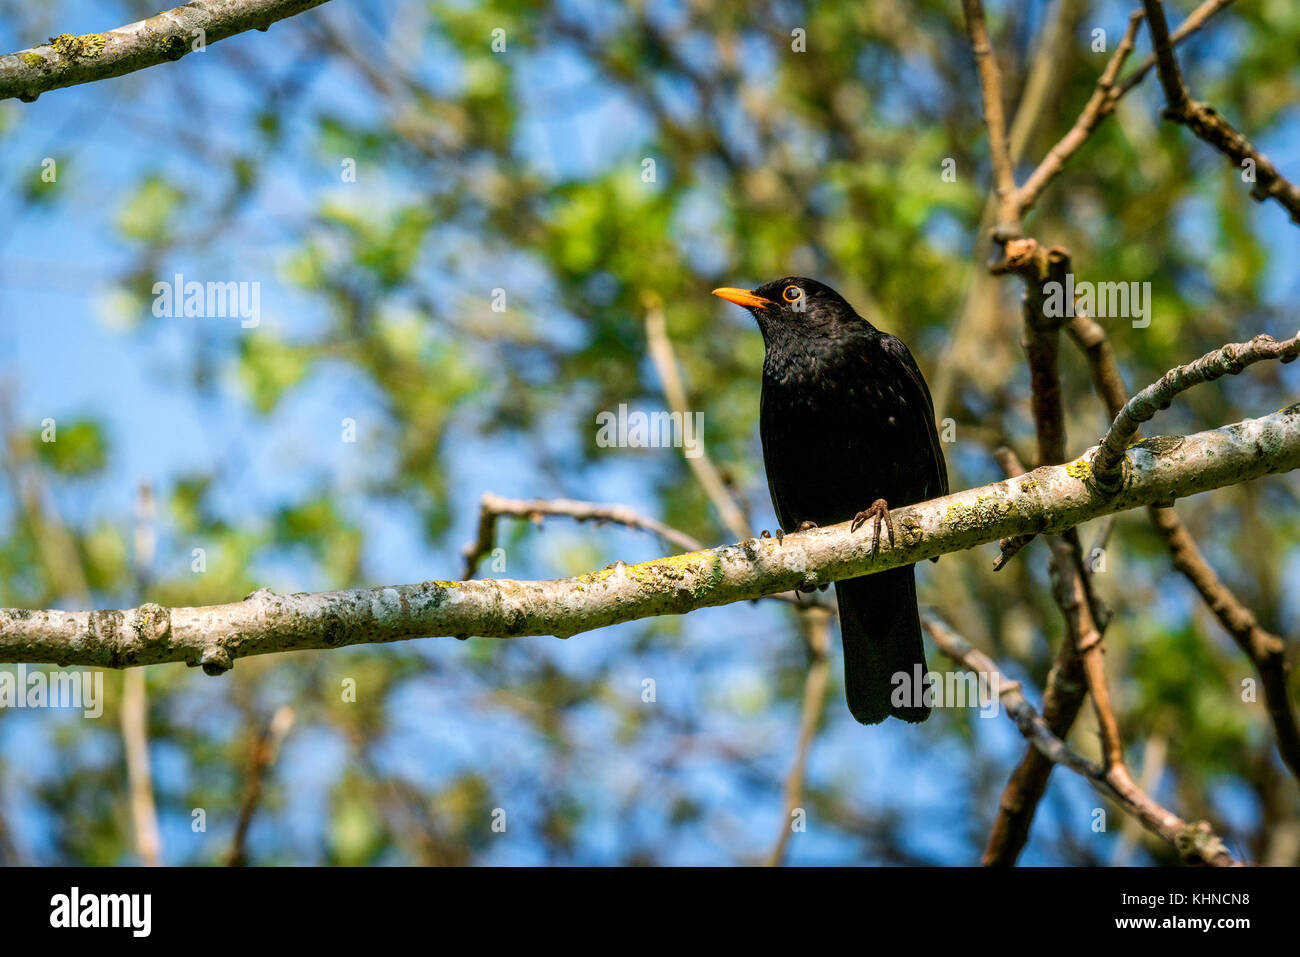 Blackbird sitting on a branch in a tree in the spring with a colorful orange beak - Stock Image